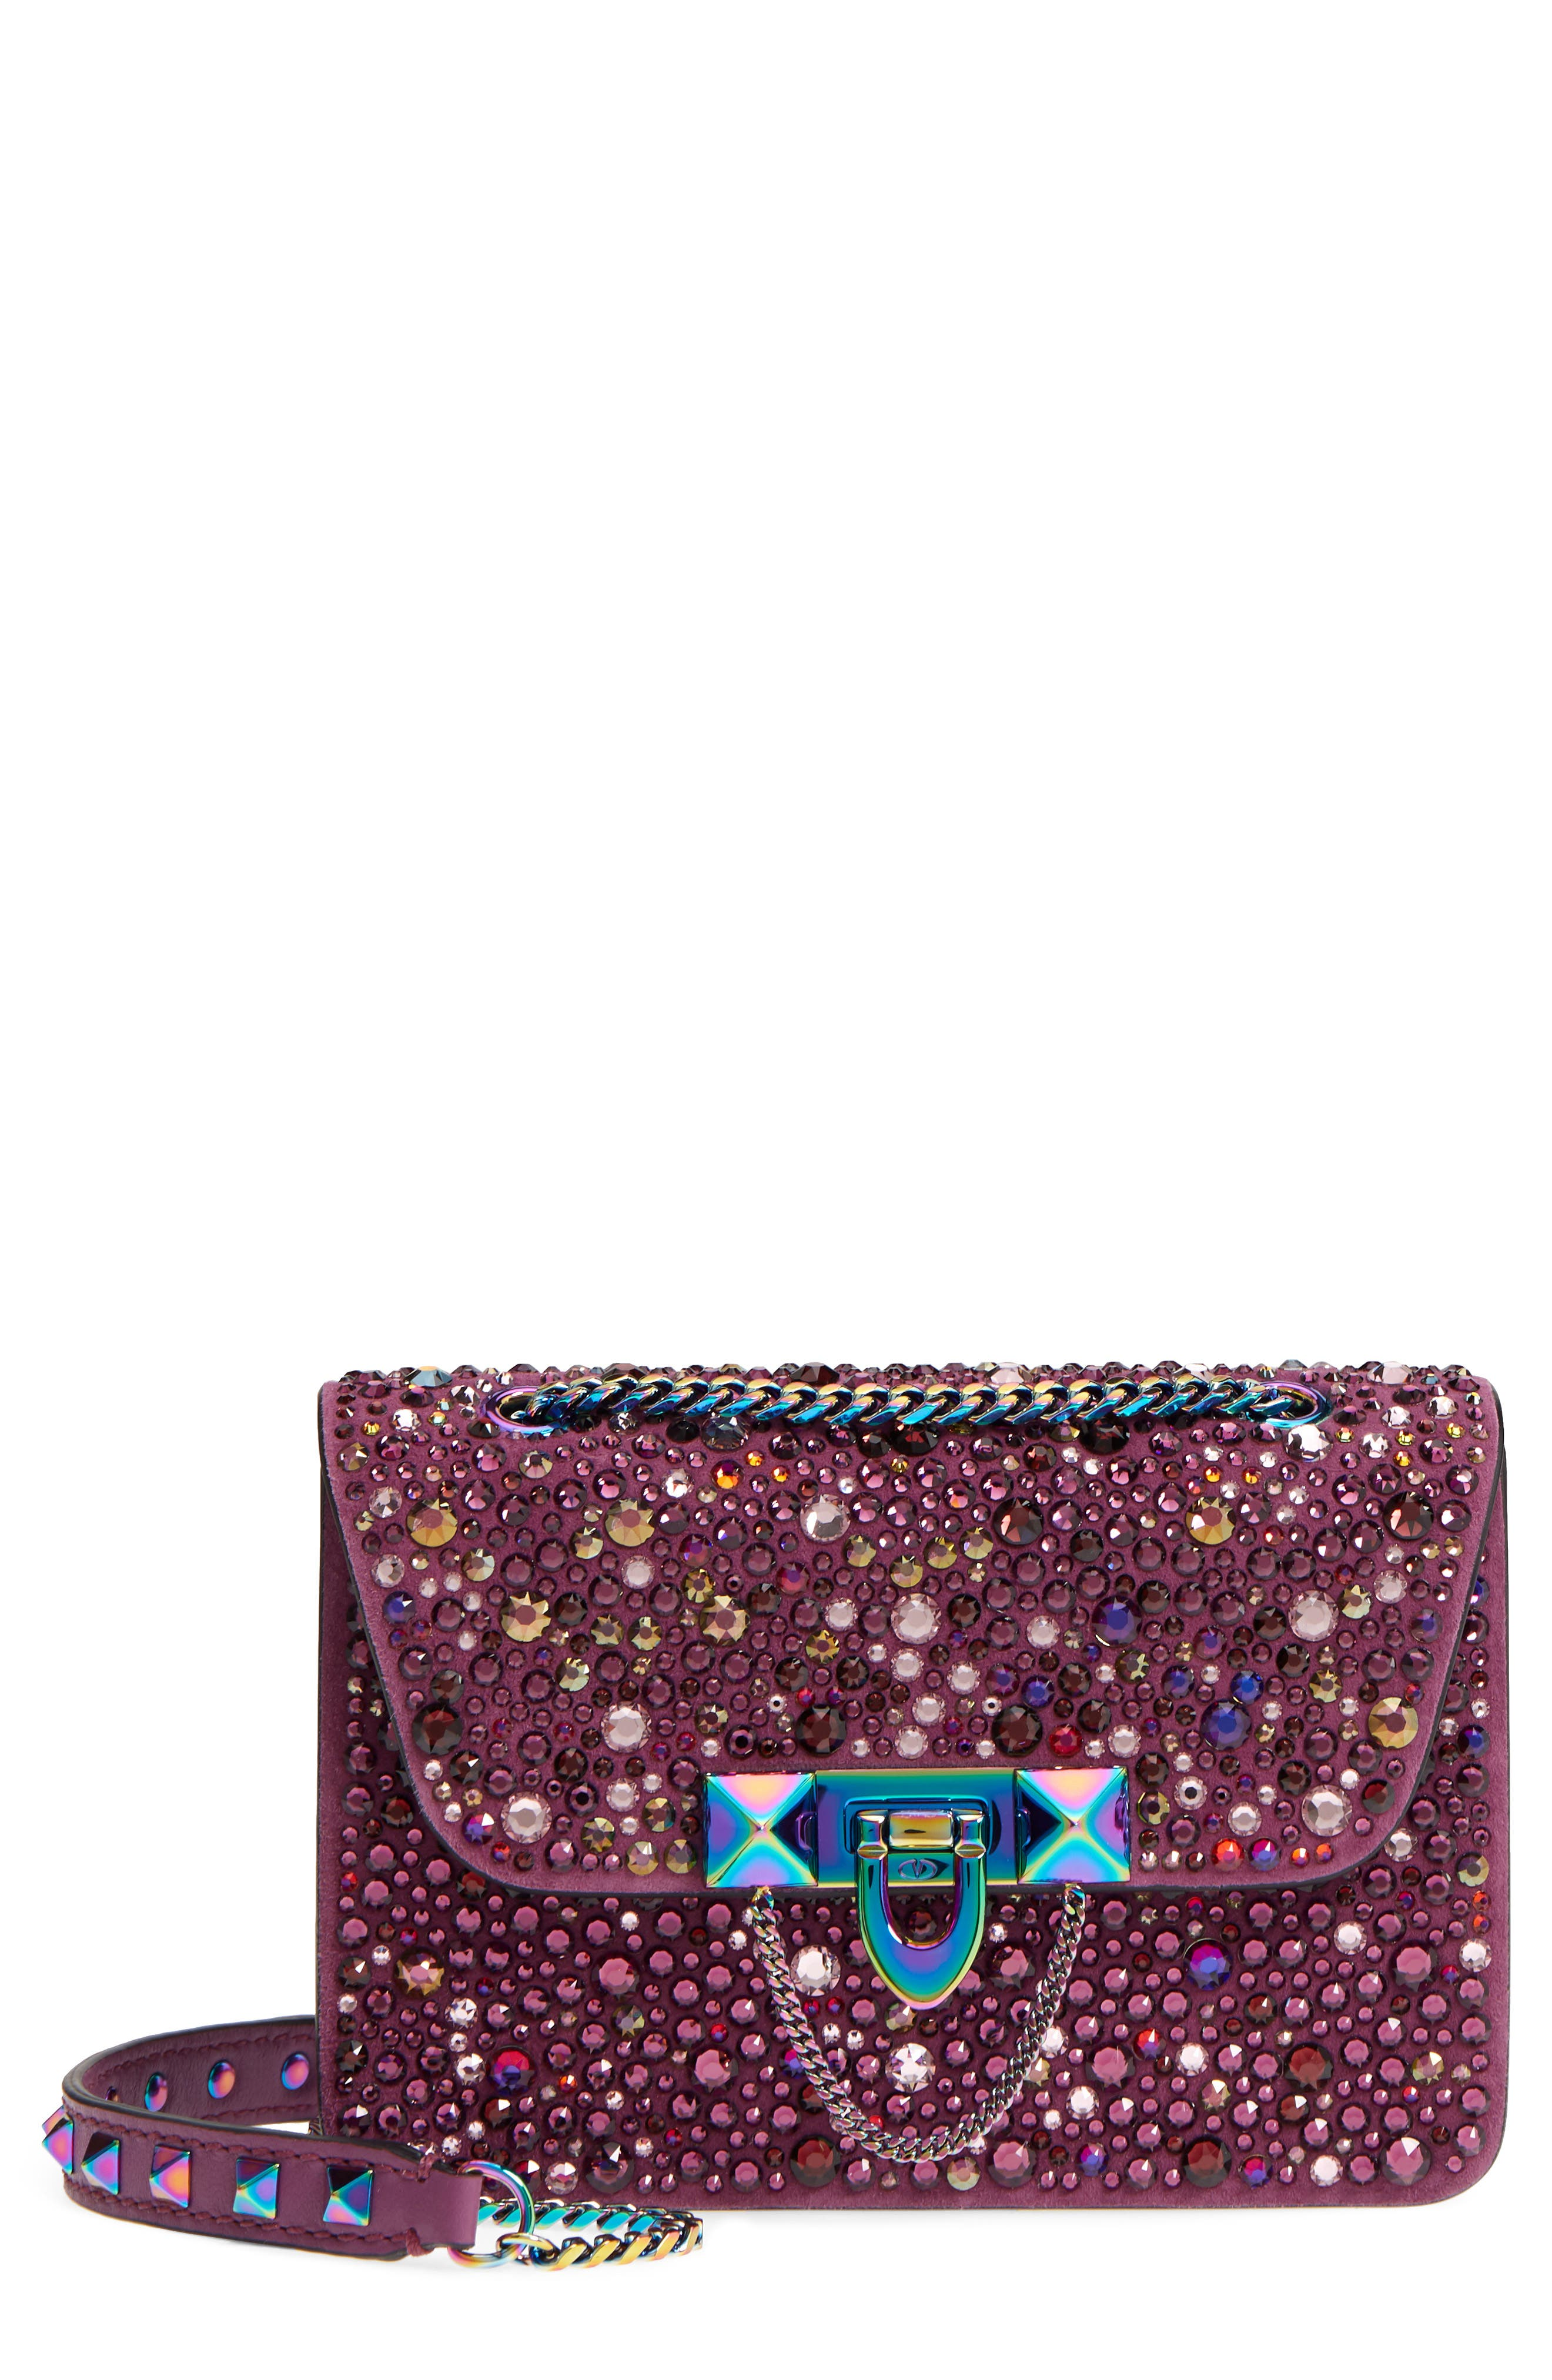 VALENTINO GARAVANI Crystal Embellished Mini Shoulder Bag